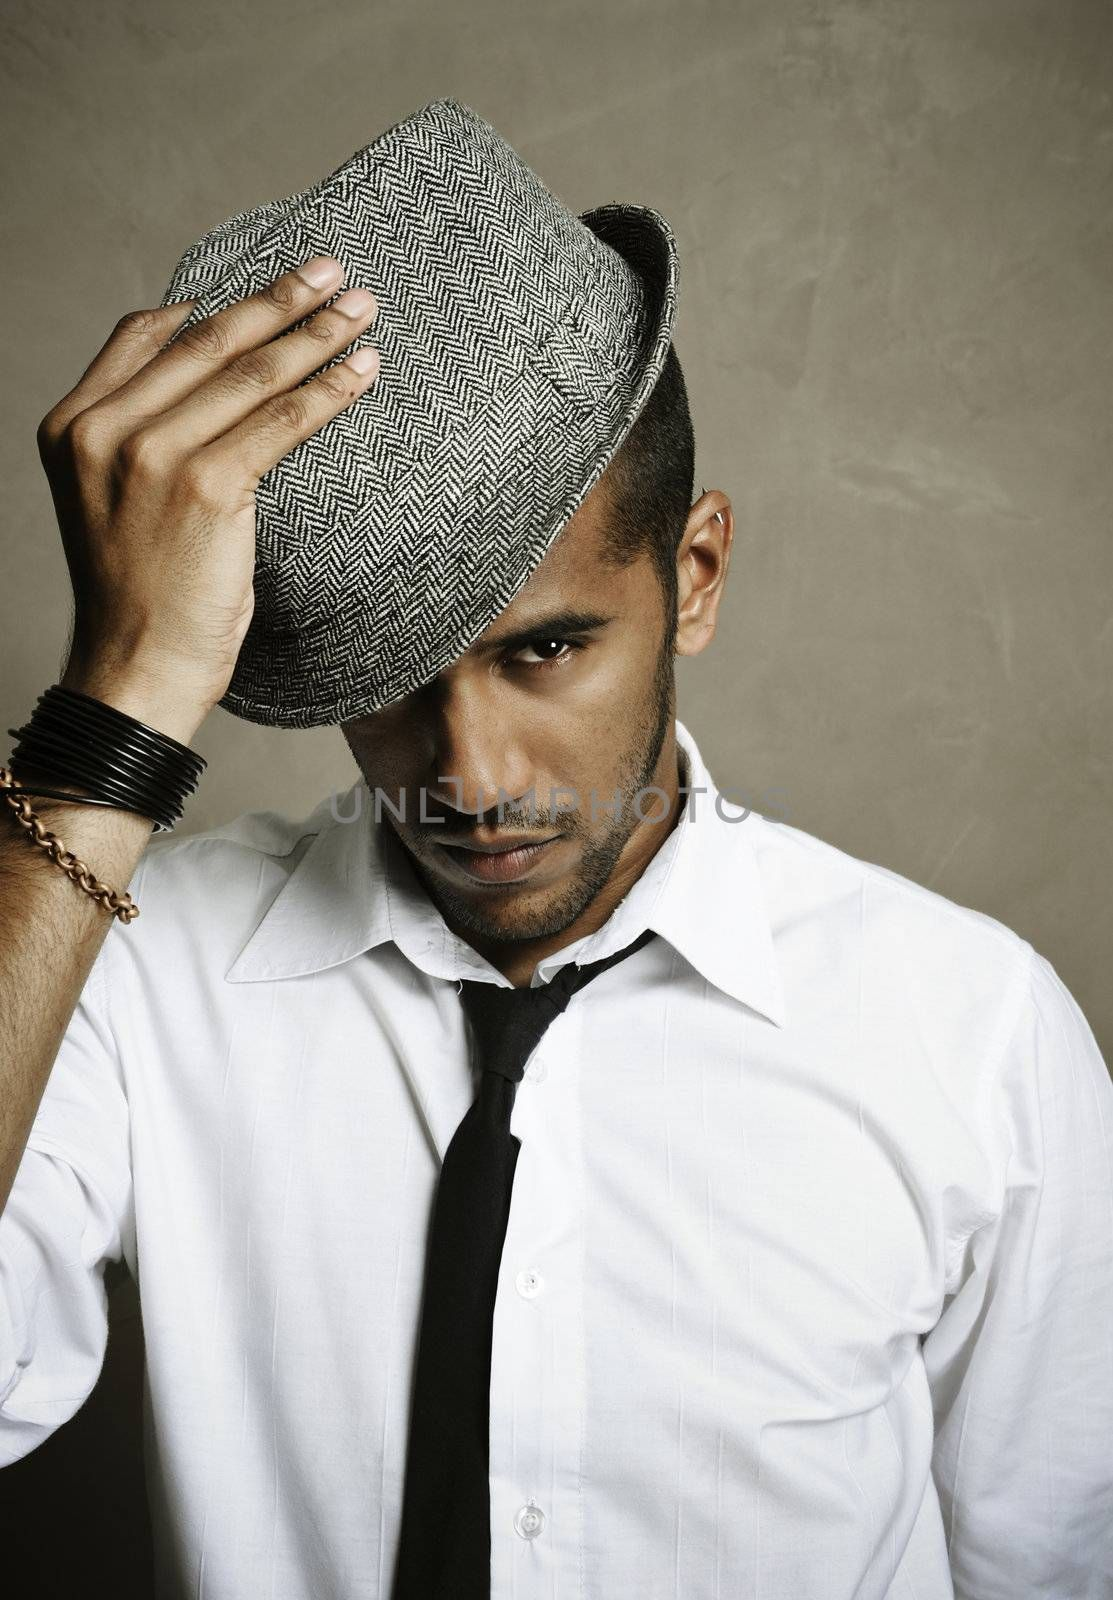 Male model stares at camera with hand on hat